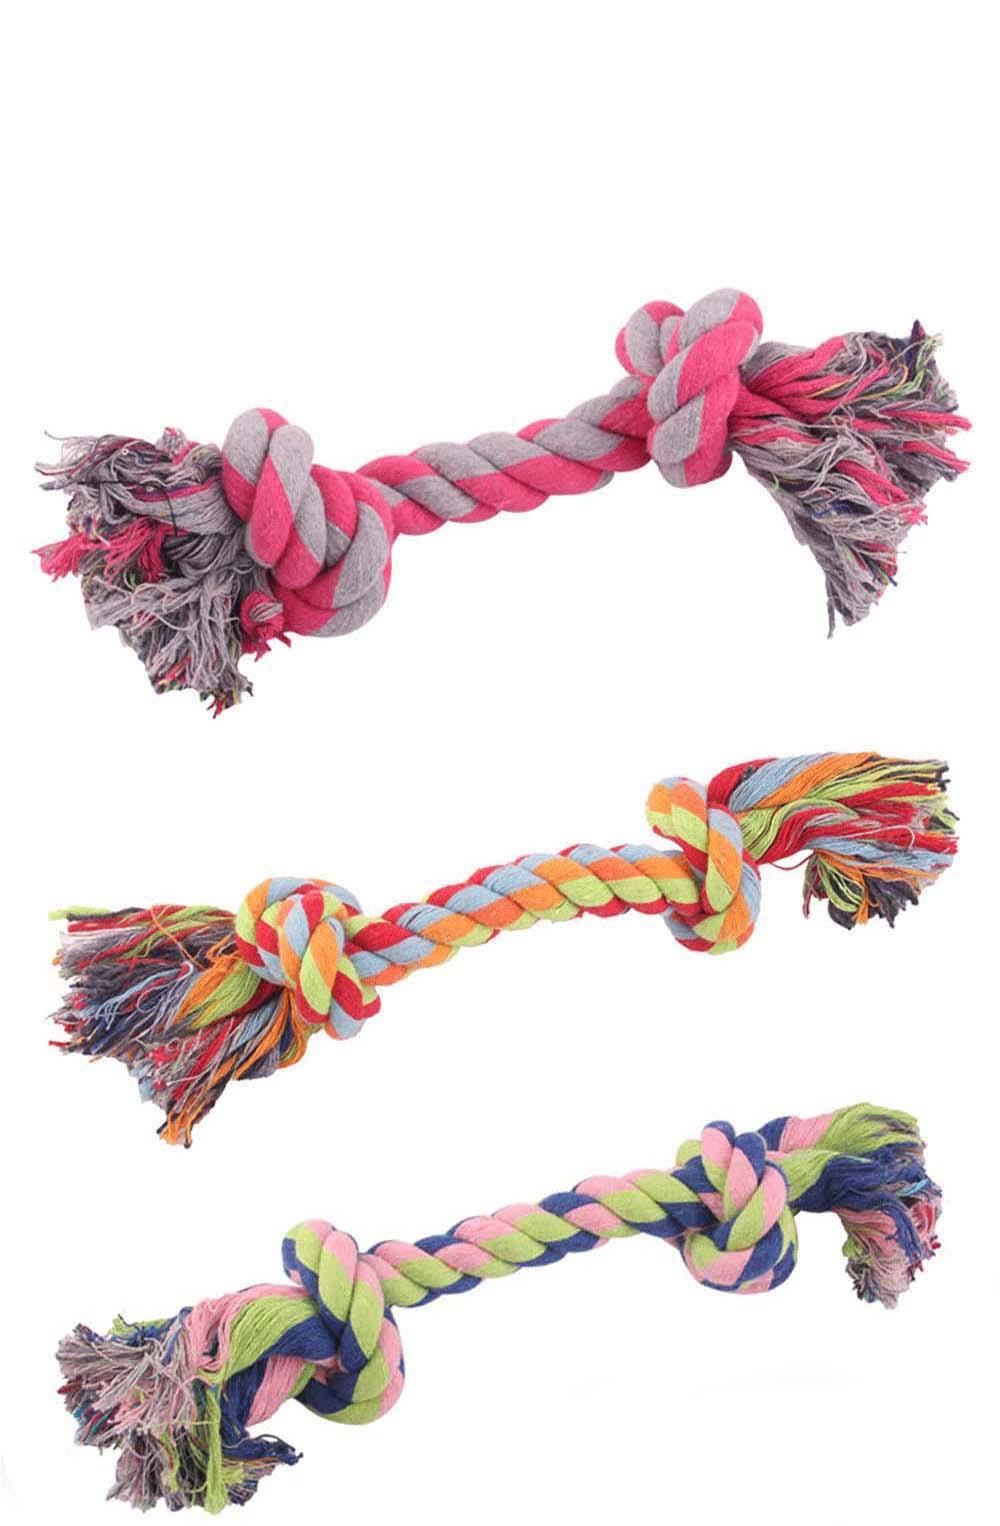 Colorful Cotton Dog Rope Toy